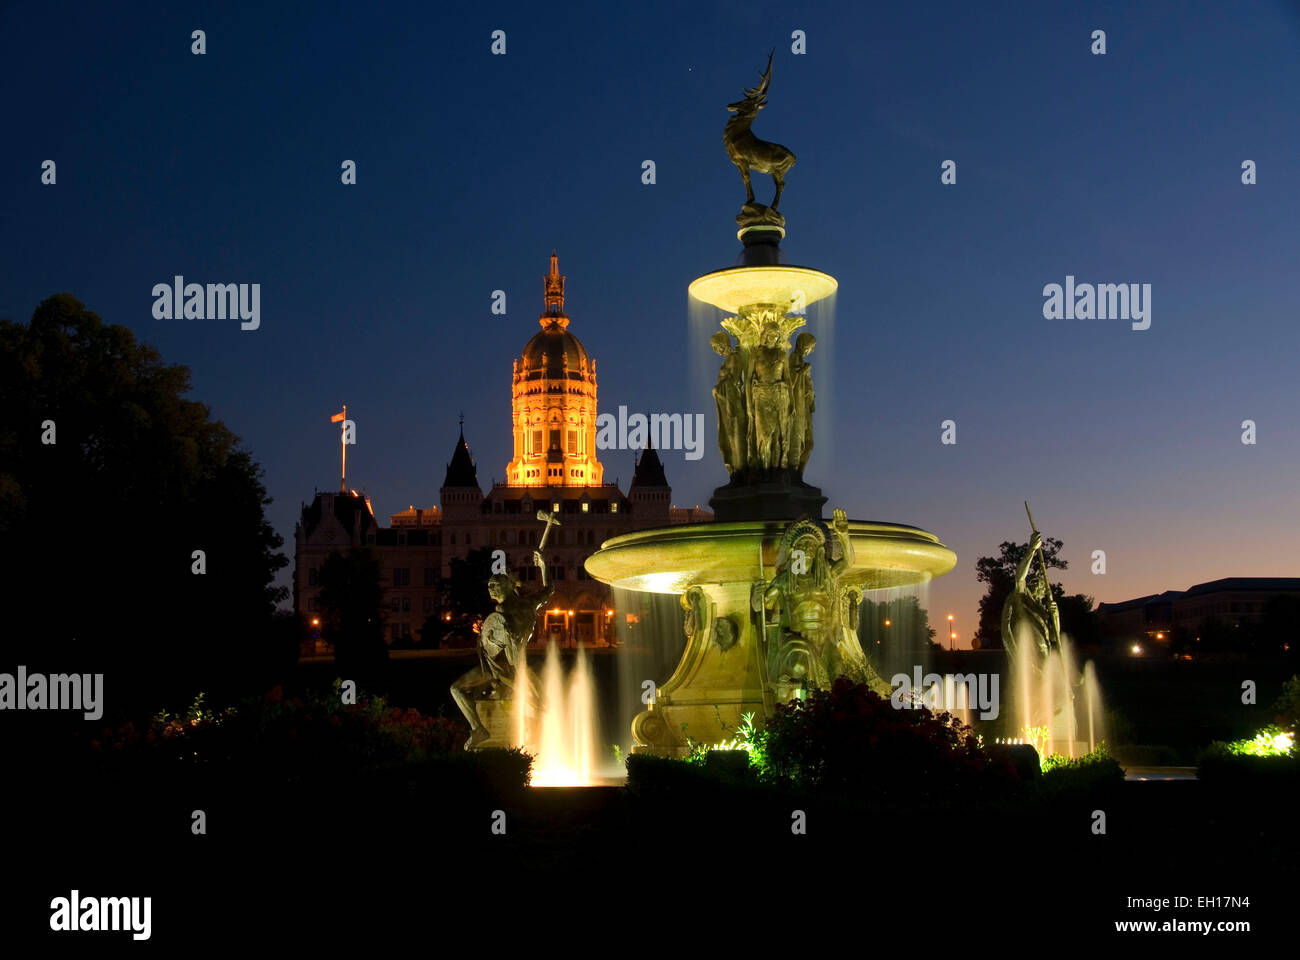 Connecticut State Capitol with Corning Fountain at night, Bushnell Park, Hartford, Connecticut - Stock Image